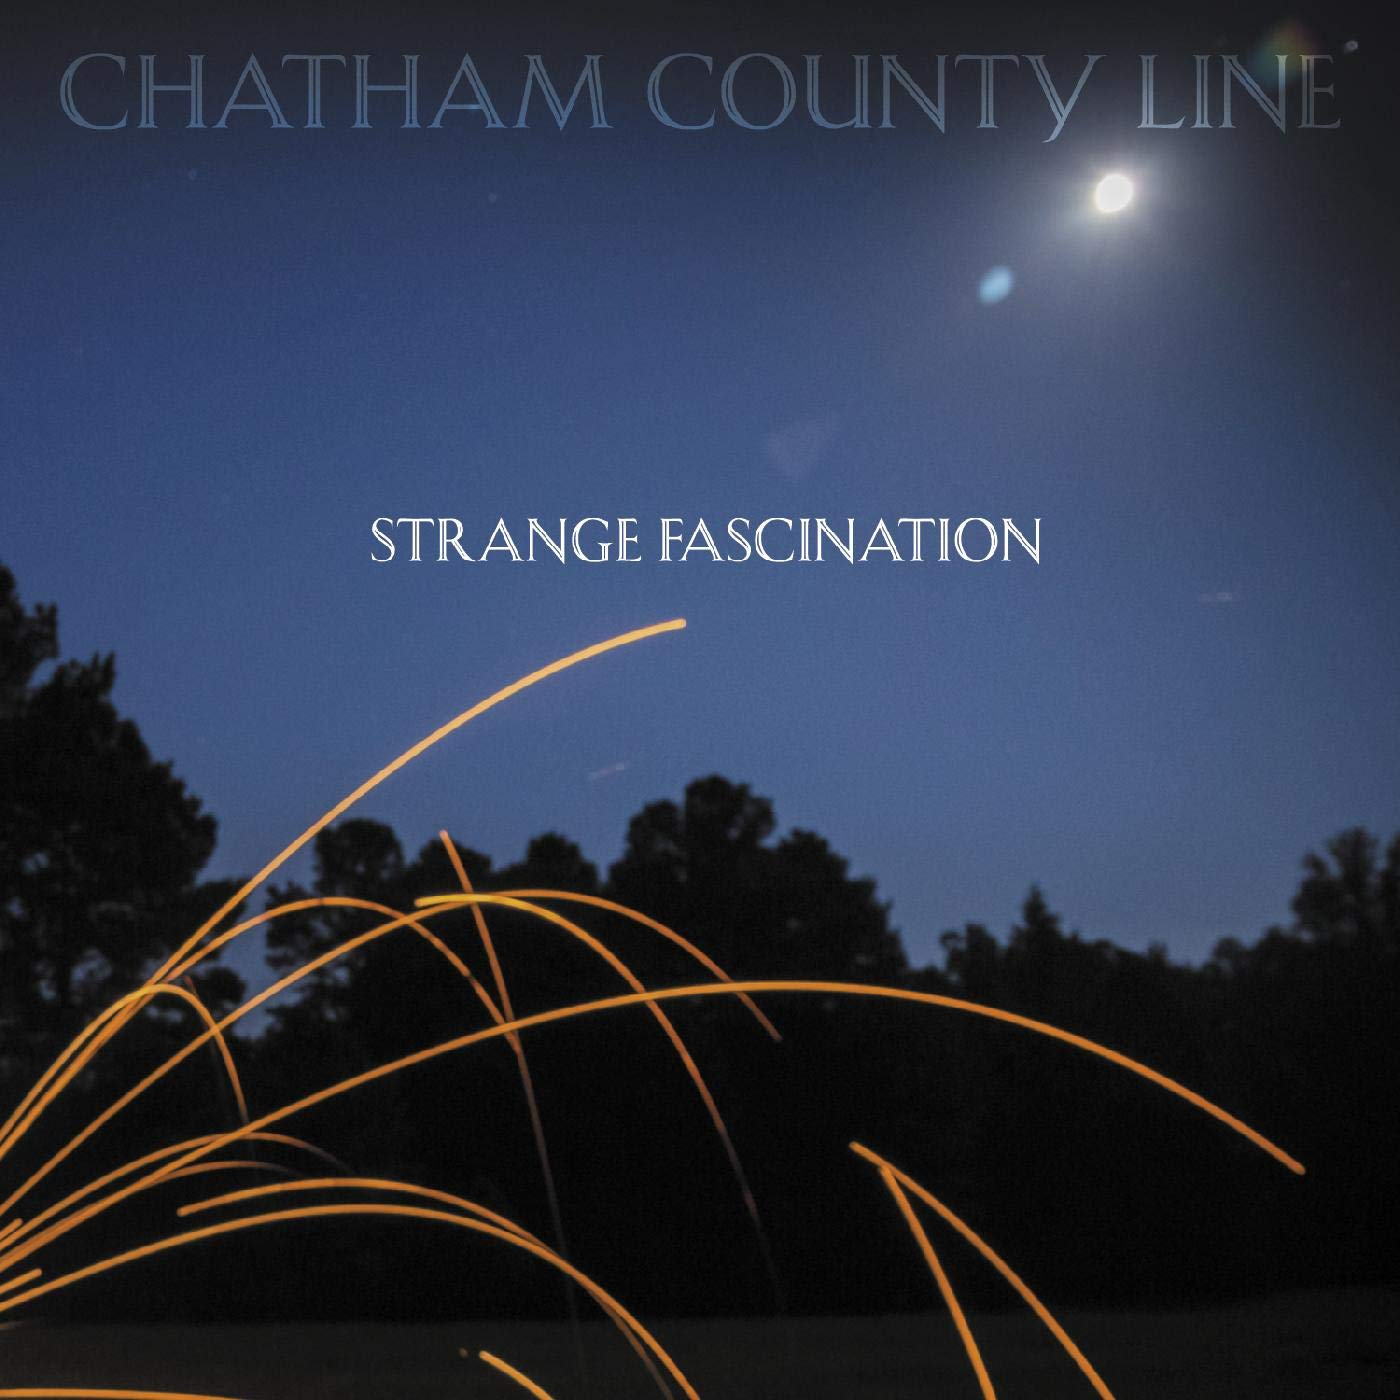 Chatham County Line - Strange Fascination (First Edition) (Post) [Download Included]